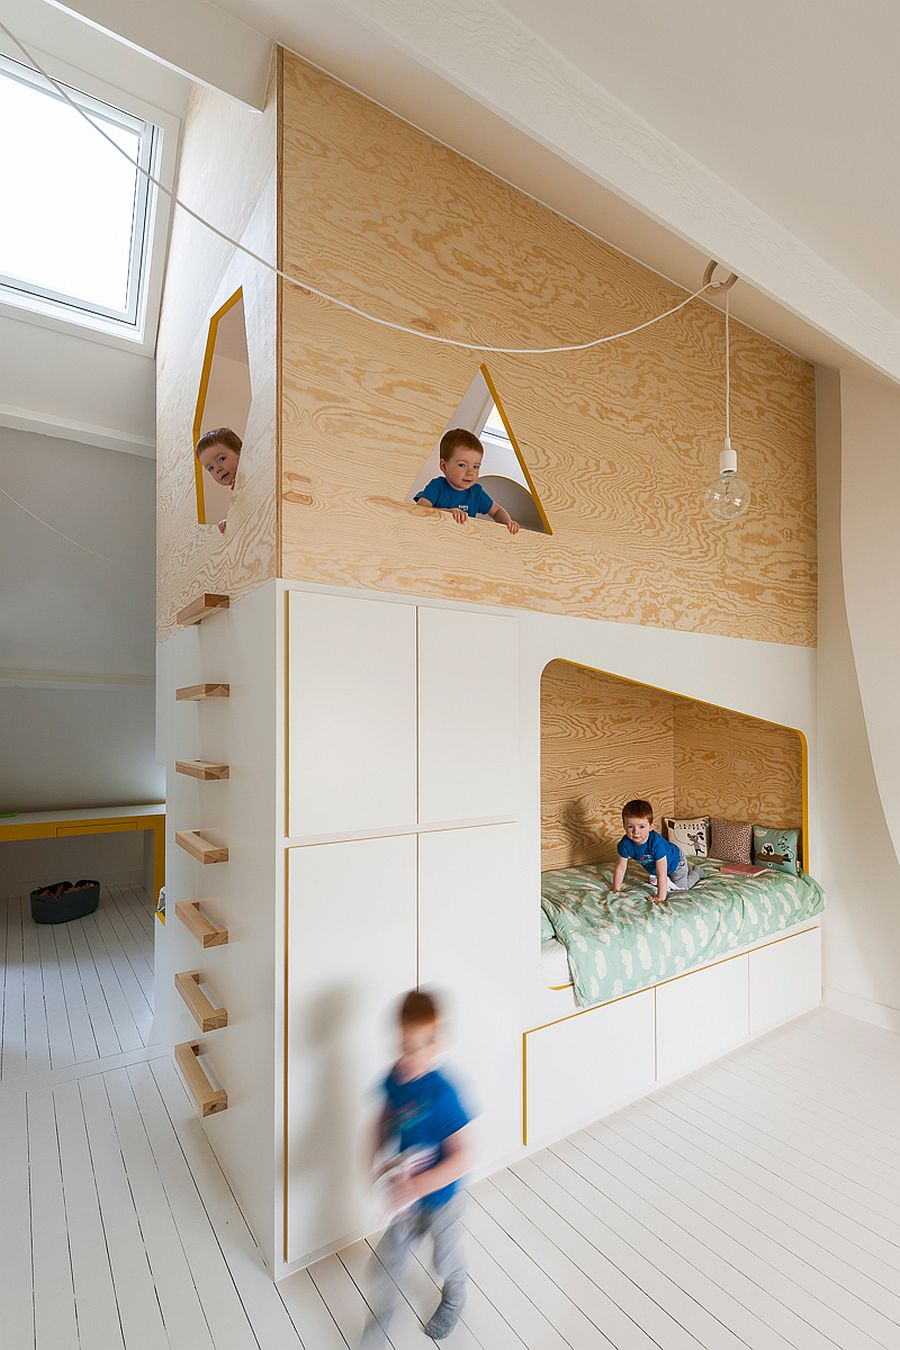 Twin-niches-for-the-beds-on-either-side-offer-ample-sleeping-space